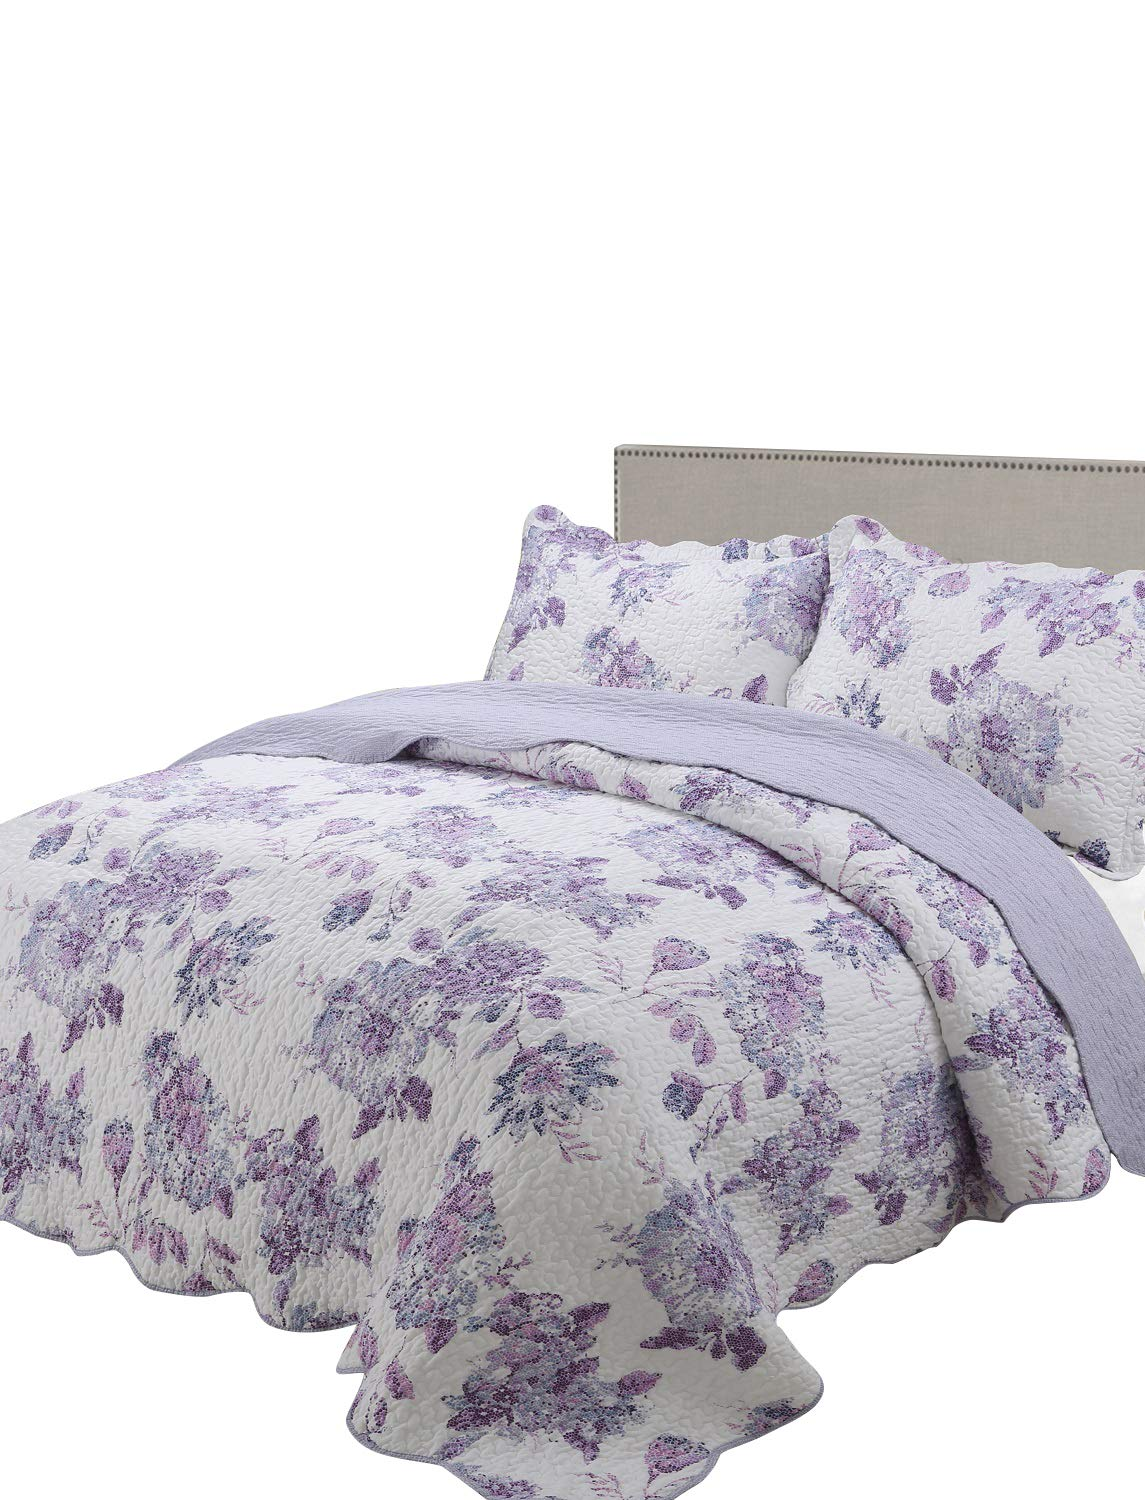 vivinna home textile Printing Quilt Queen Size Sets -3pcs Include 2 Pillow Shams Patchwork Bedspread Blanket (Queen:90'' 90'', Dark Violet)